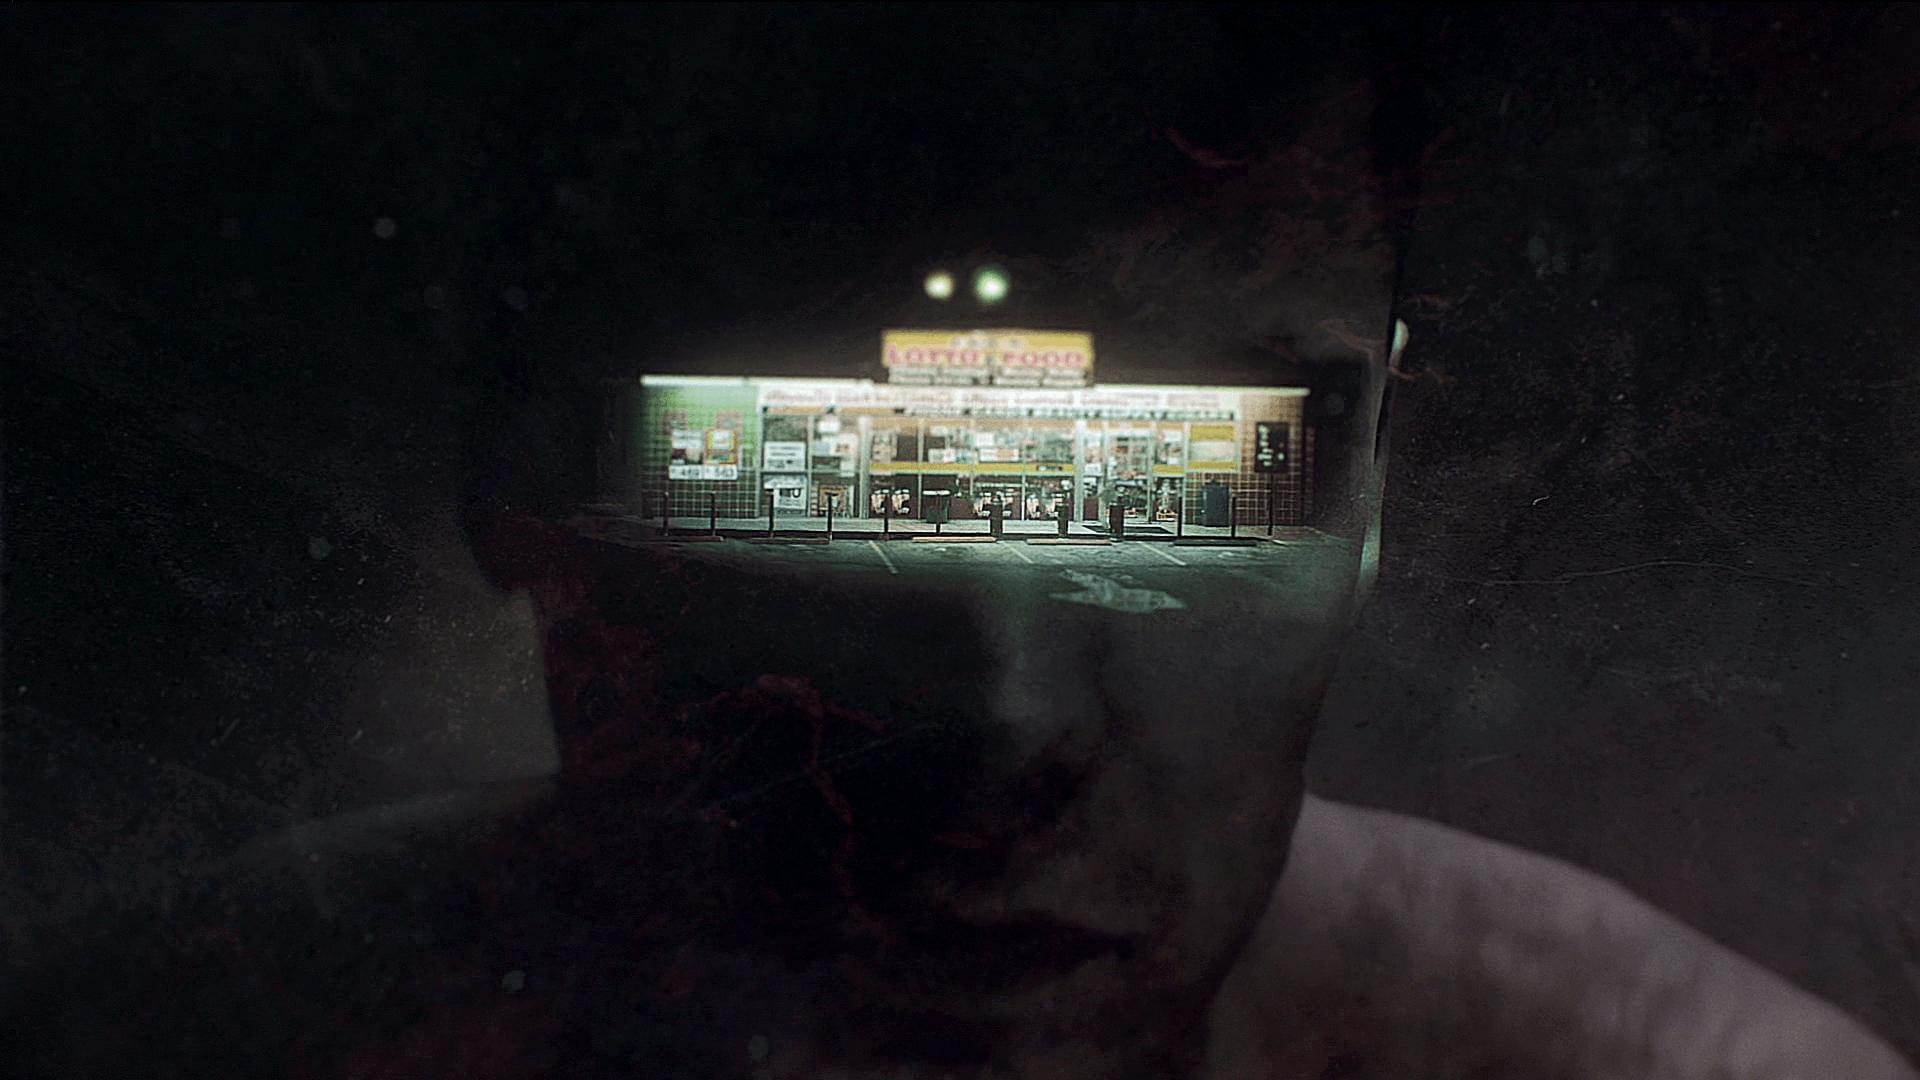 S2E1] Opening Sequence Wallpapers [1920x1080] : TrueDetective